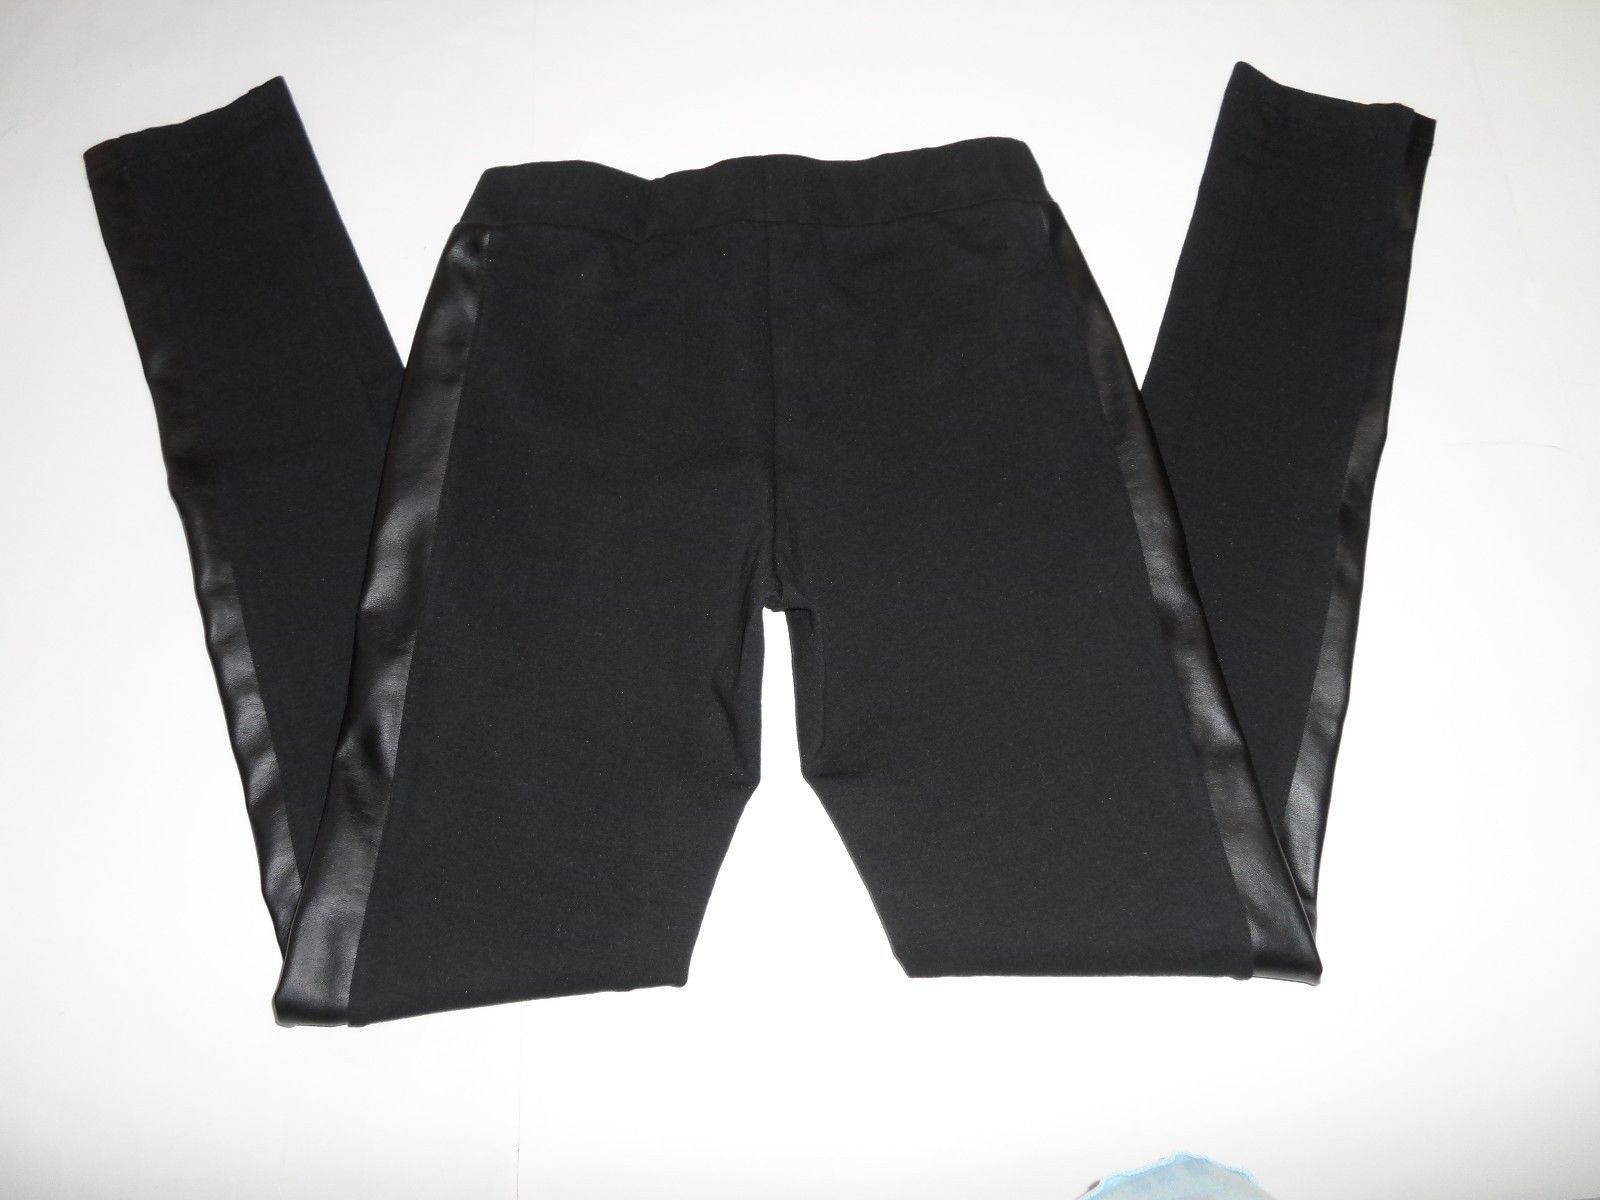 Nordstrom RID Faux Leather Panelled Legging Black Size S-$44 image 4